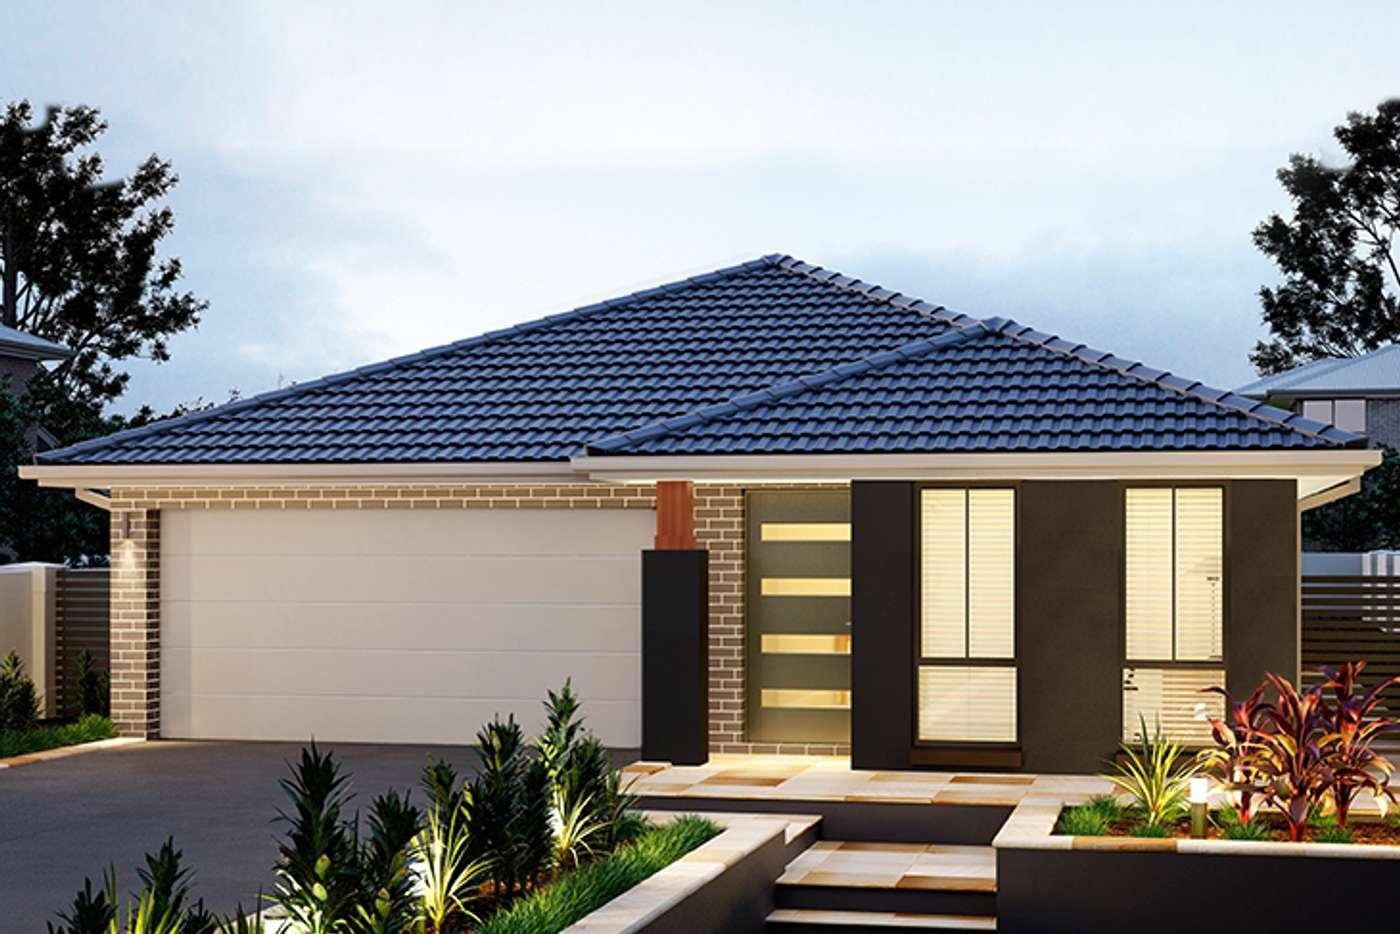 Main view of Homely other listing, Lot 222 Crystal Palace Way, Leppington NSW 2171